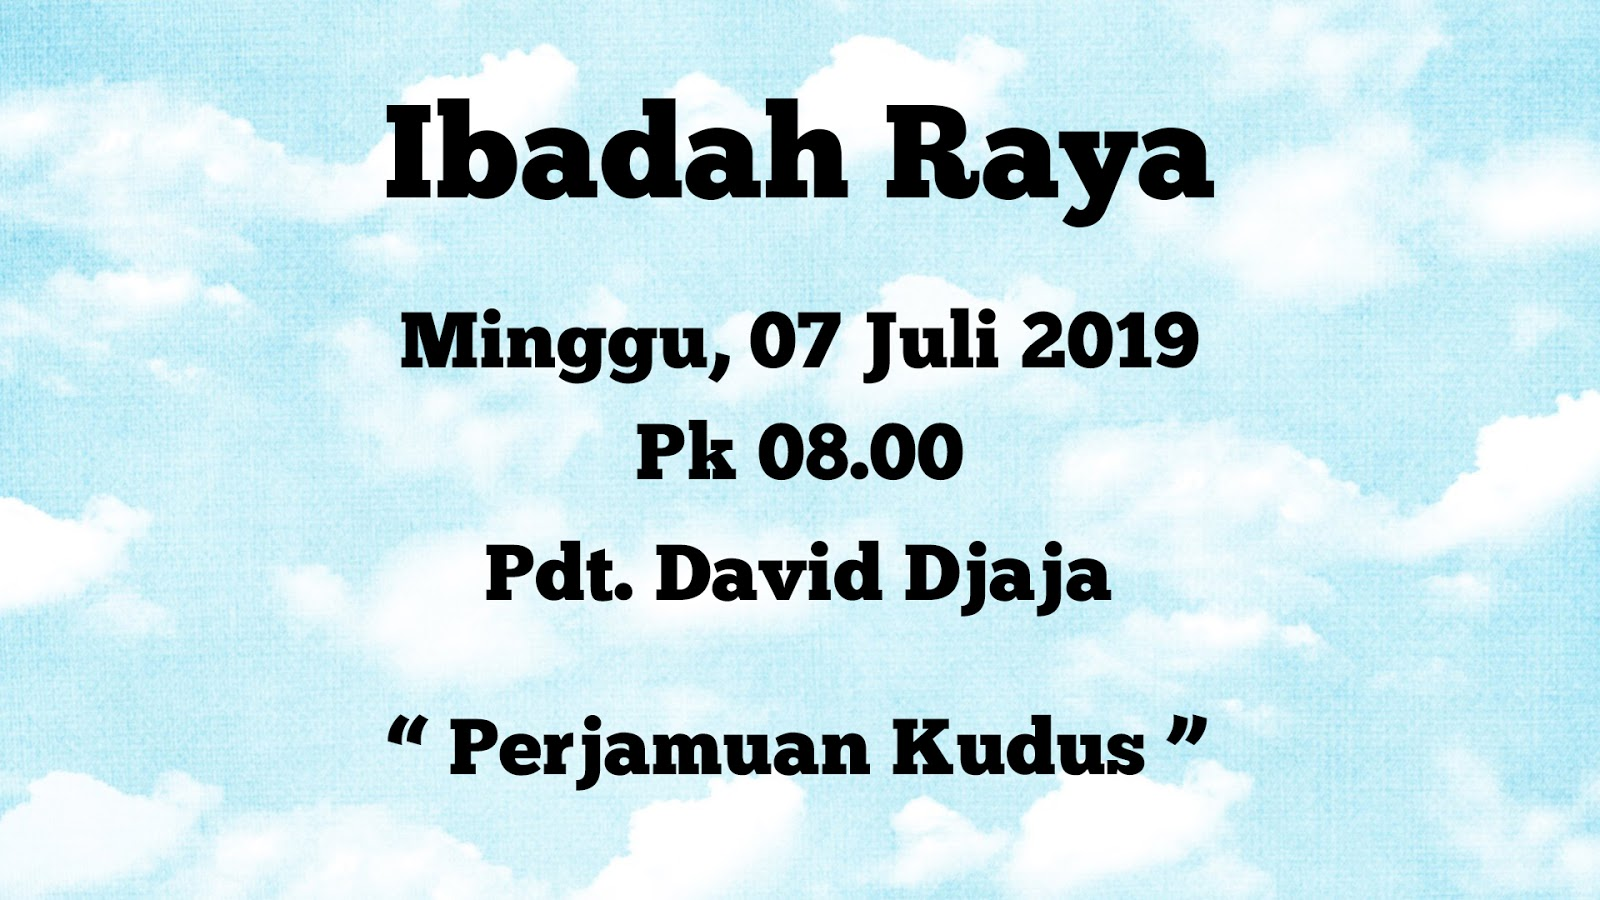 Ibadah raya GSJA Sword 07-07-2019 Pdt. David Djaja